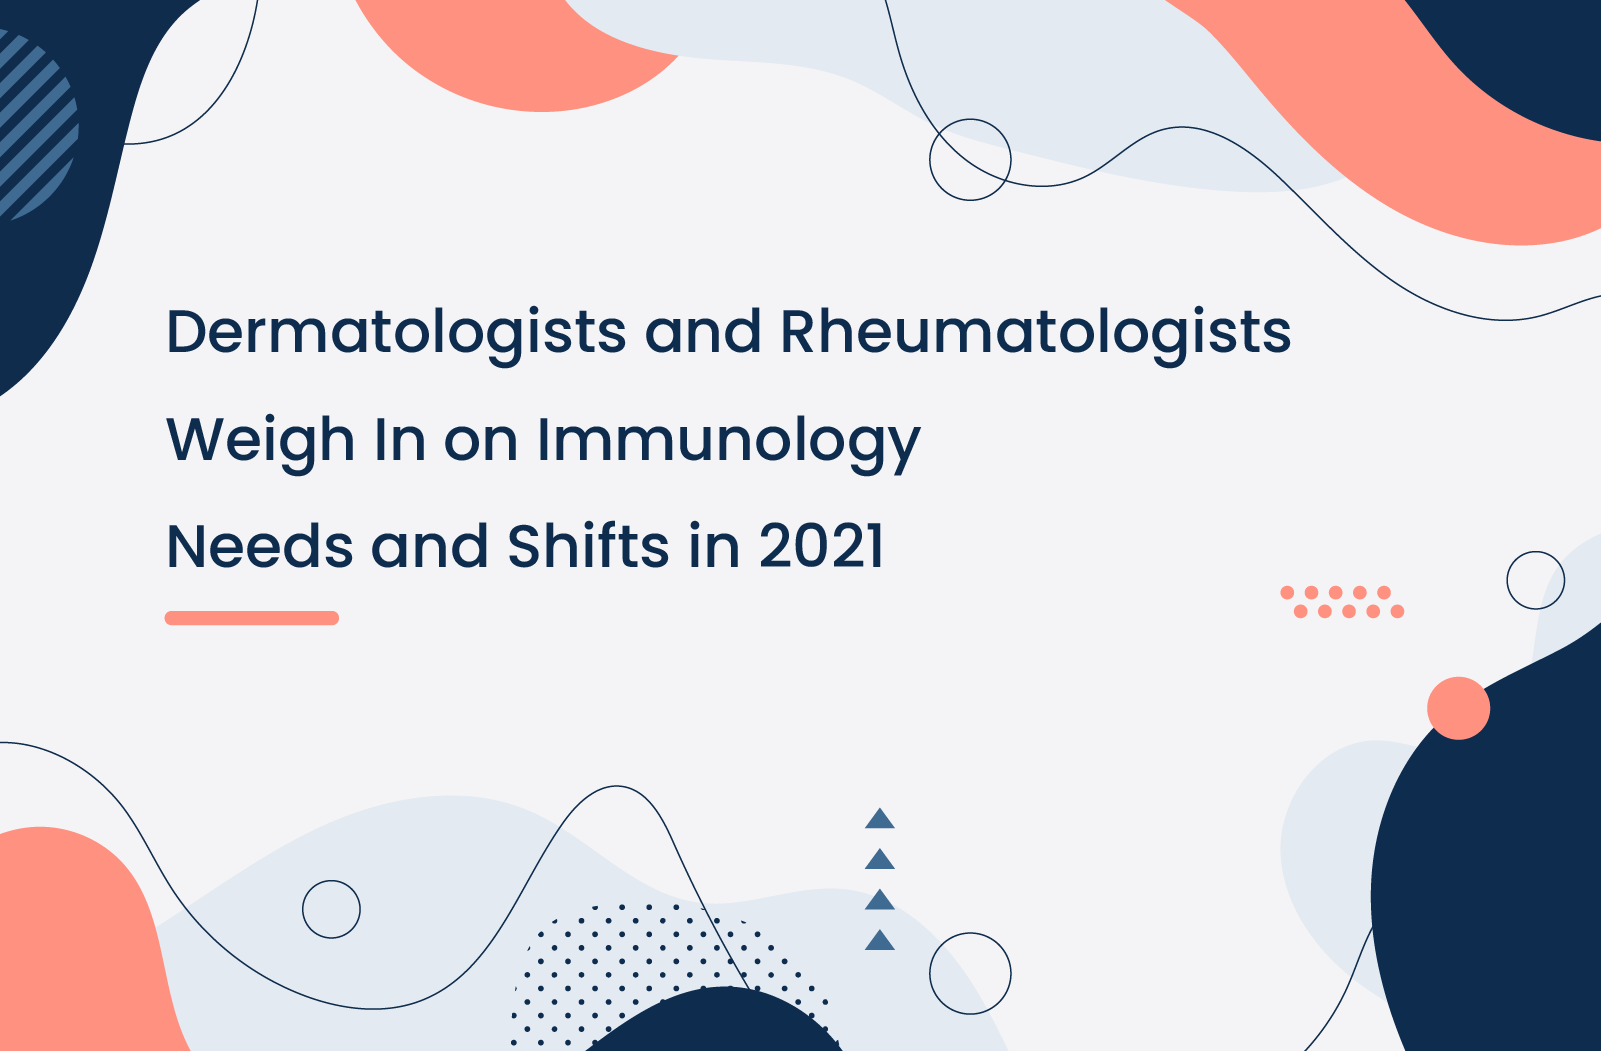 Dermatologists and Rheumatologists Weigh In on Immunology Needs and Shifts in 2021